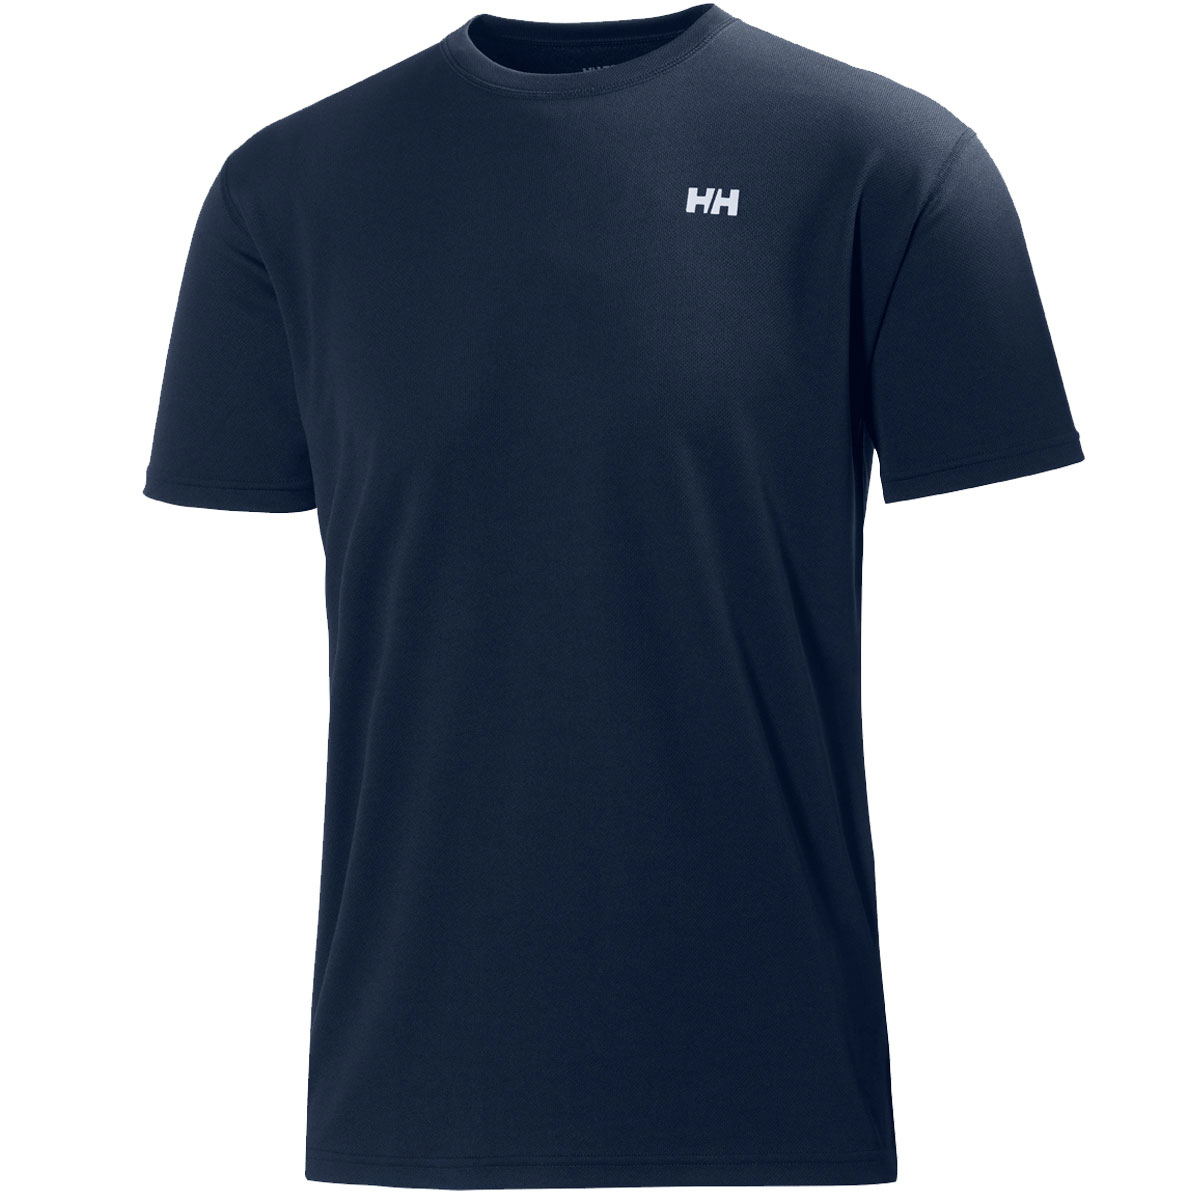 Helly hansen 2017 mens hh x cool training workout gym t for Gym shirt t shirt